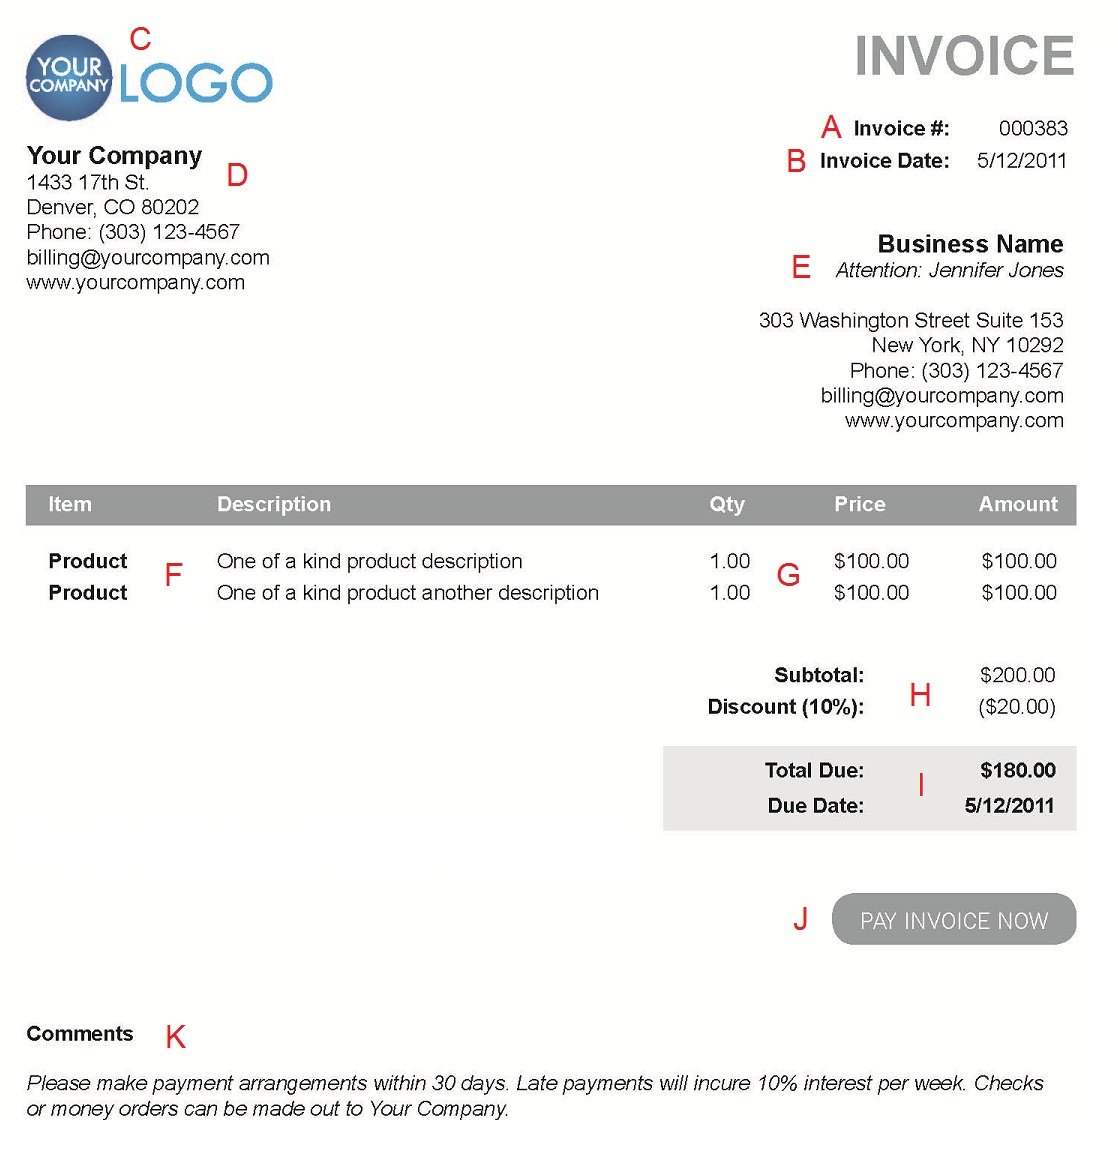 Opposenewapstandardsus  Unique The  Different Sections Of An Electronic Payment Invoice With Extraordinary A  With Agreeable Income Tax Receipts Also Neat Receipt Scanner Driver In Addition Trust Receipts And Sephora Return Policy With Receipt As Well As Electronic Receipts Template Additionally Receipt Voucher From Paysimplecom With Opposenewapstandardsus  Extraordinary The  Different Sections Of An Electronic Payment Invoice With Agreeable A  And Unique Income Tax Receipts Also Neat Receipt Scanner Driver In Addition Trust Receipts From Paysimplecom